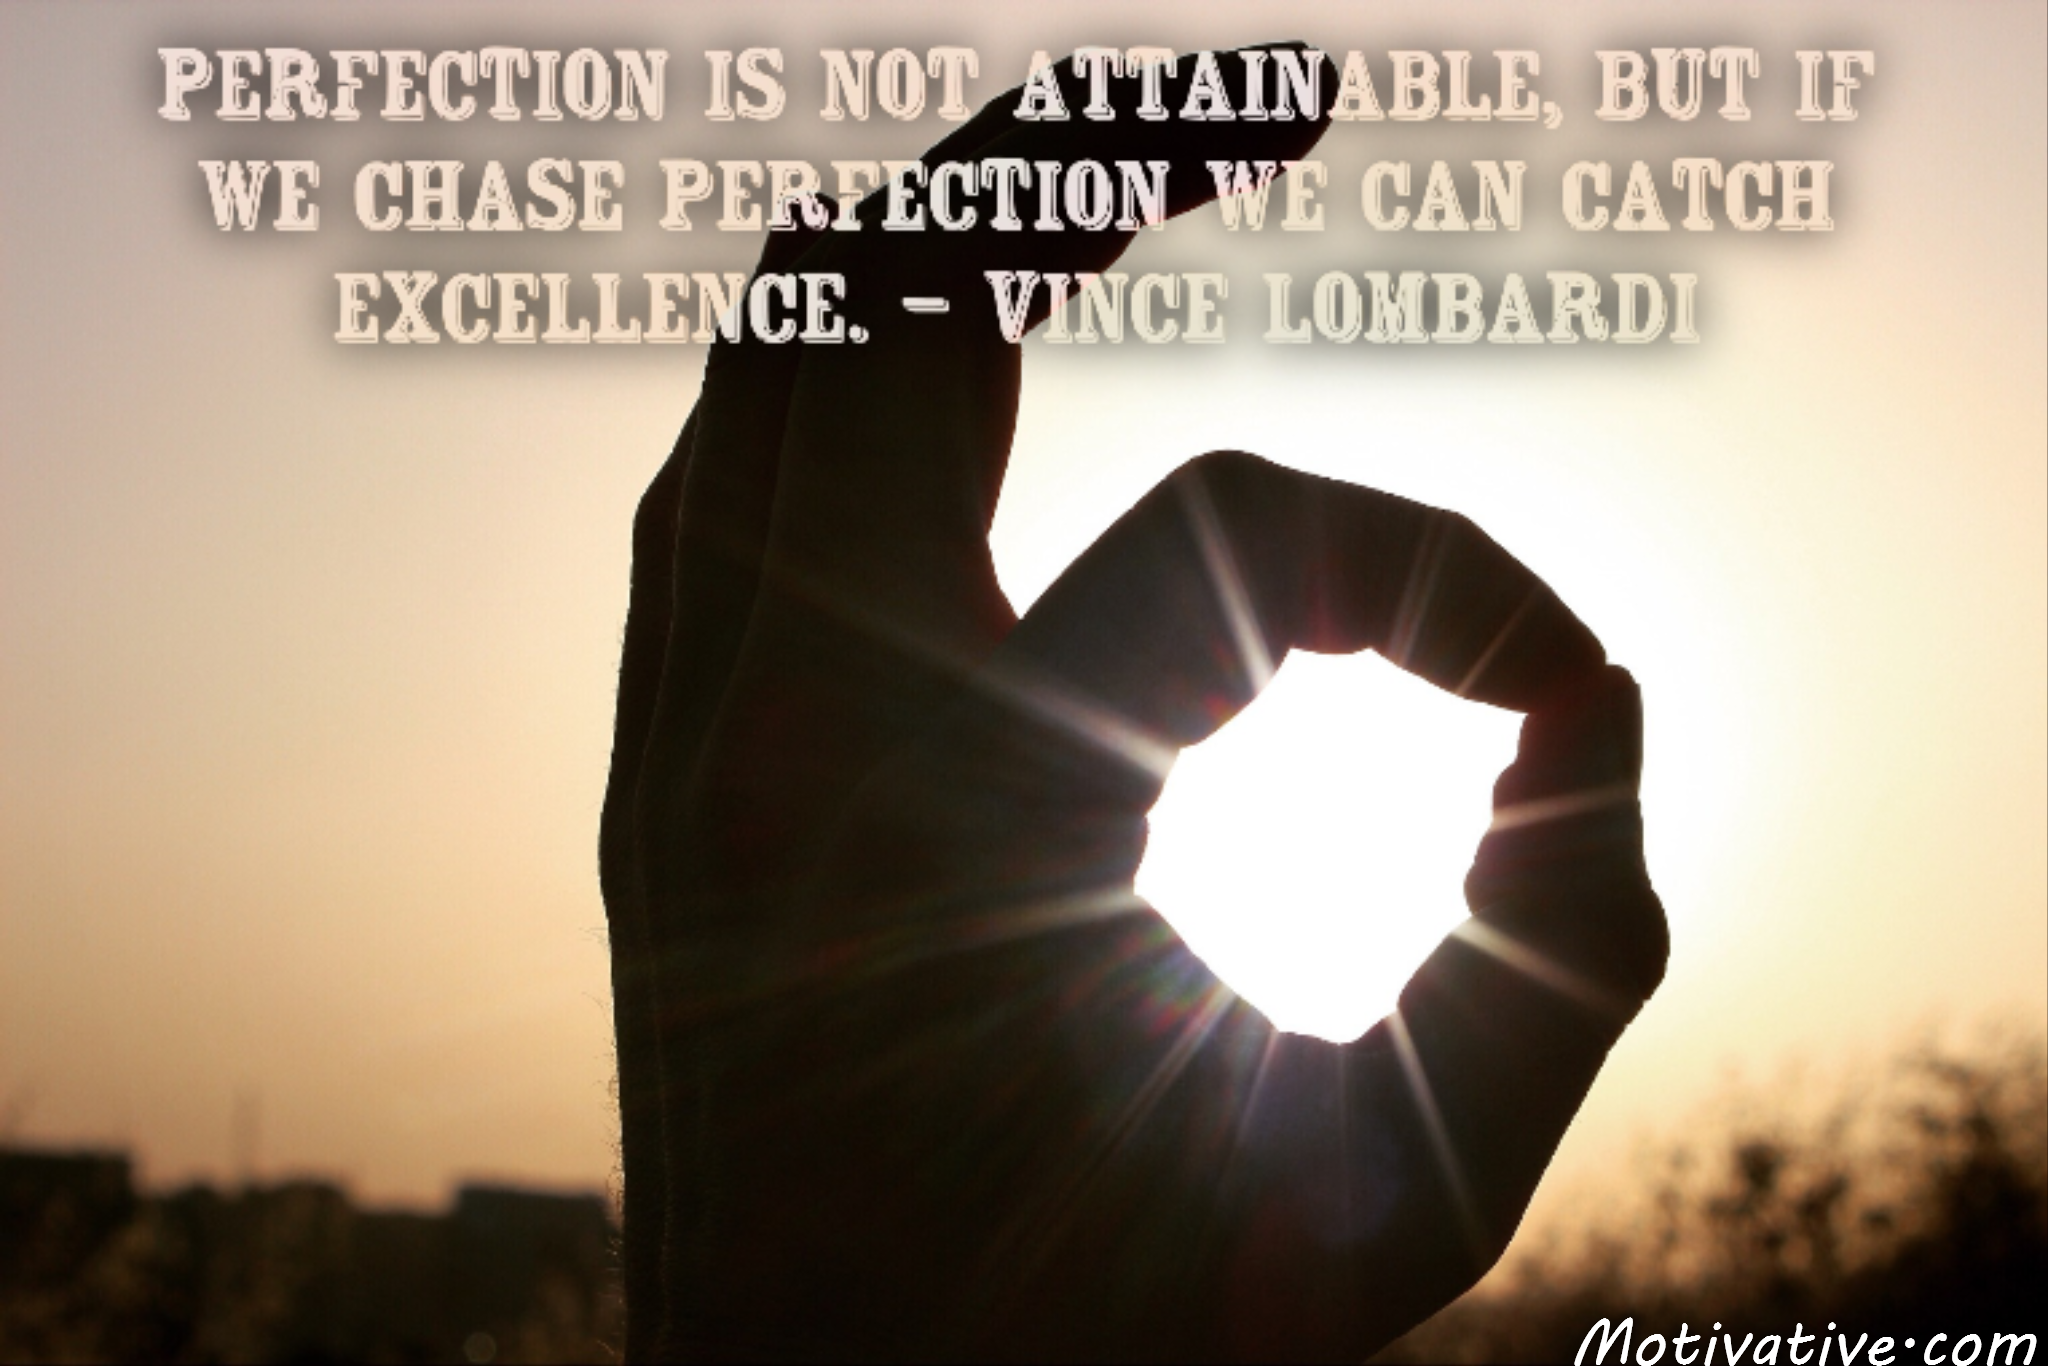 Perfection is not attainable, but if we chase perfection we can catch excellence. – Vince Lombardi